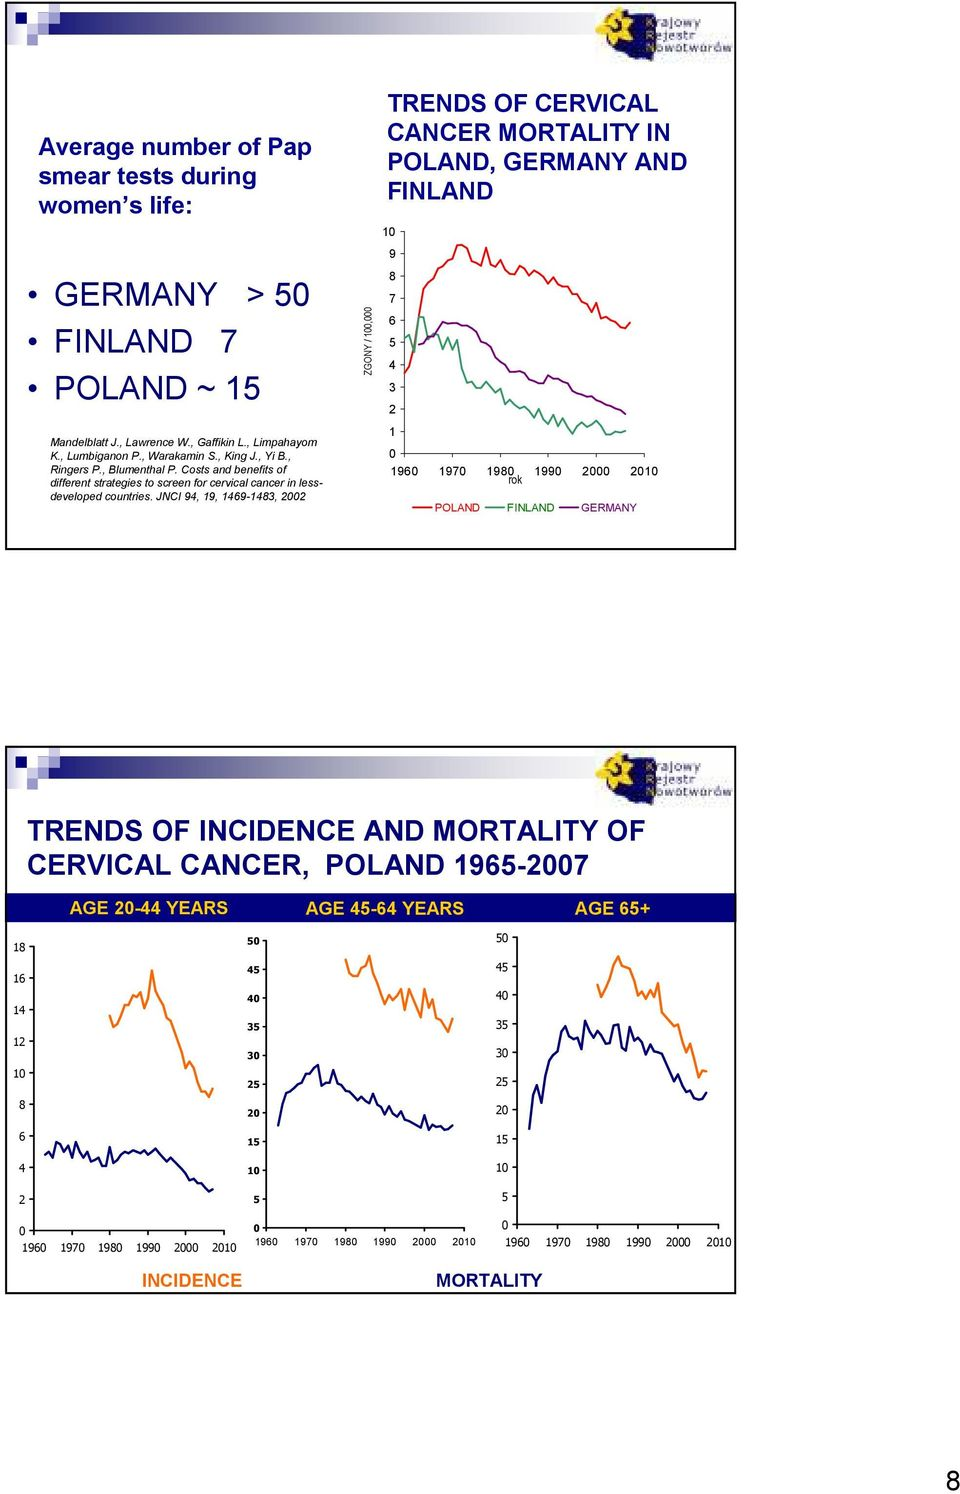 JNCI 94, 19, 1469-1483, 22 ZGONY / 1, TRENDS OF CERVICAL CANCER MORTALITY IN POLAND, GERMANY AND FINLAND 1 9 8 7 6 4 3 2 1 196 197 198 rok 199 2 21 POLAND FINLAND GERMANY TRENDS OF